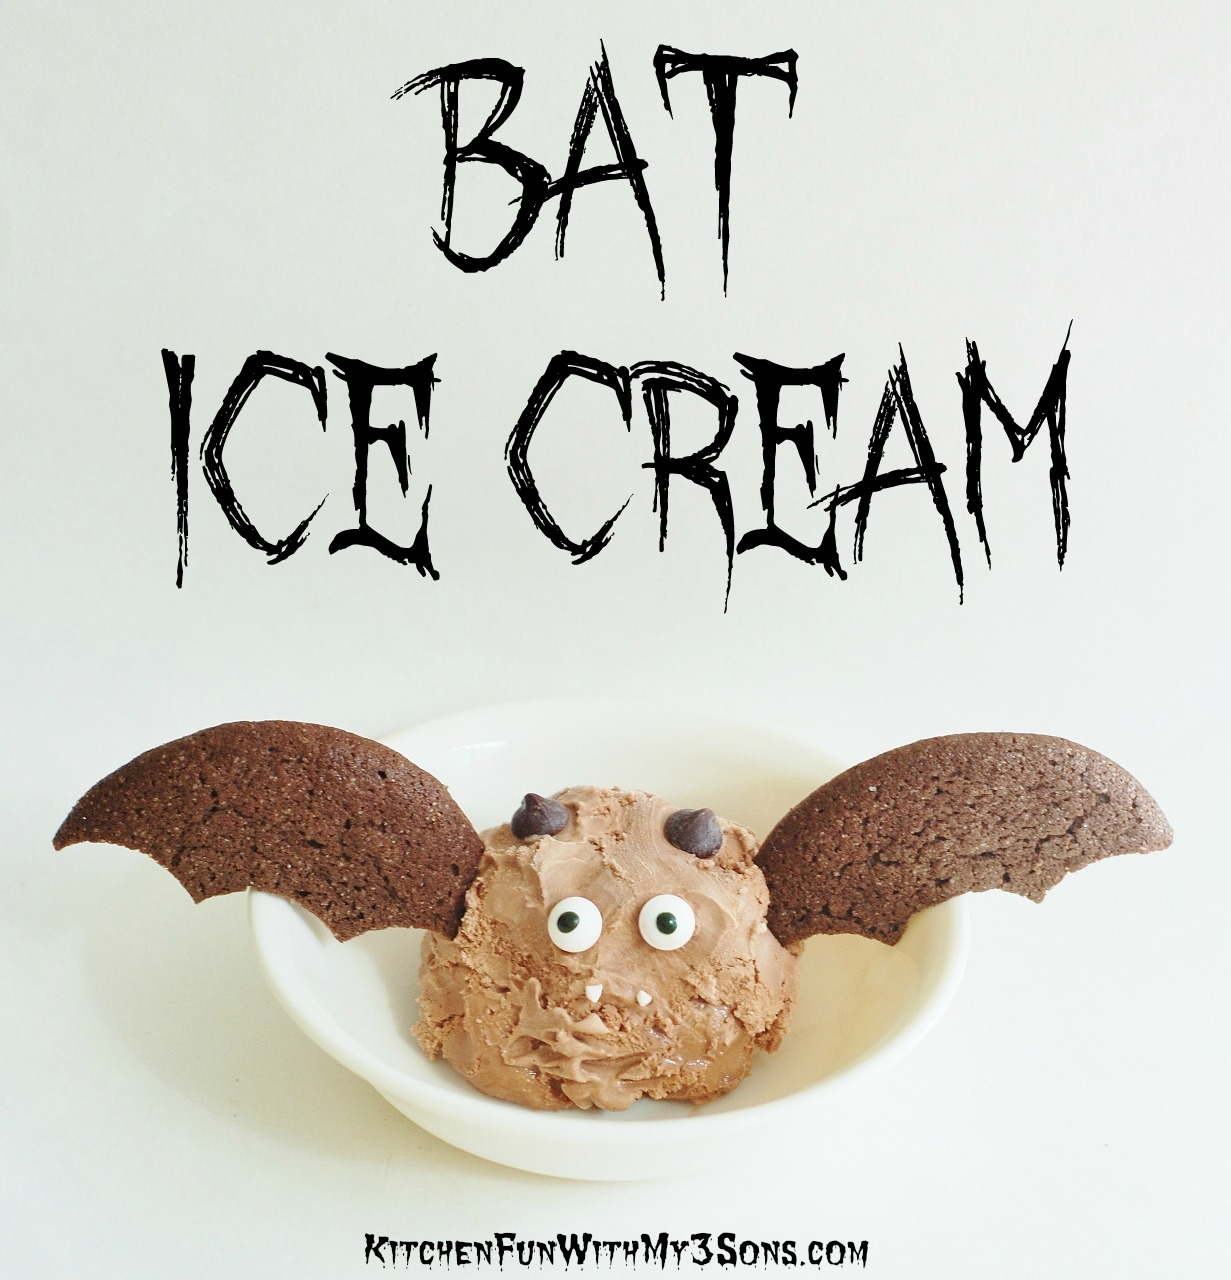 Bat Ice Cream